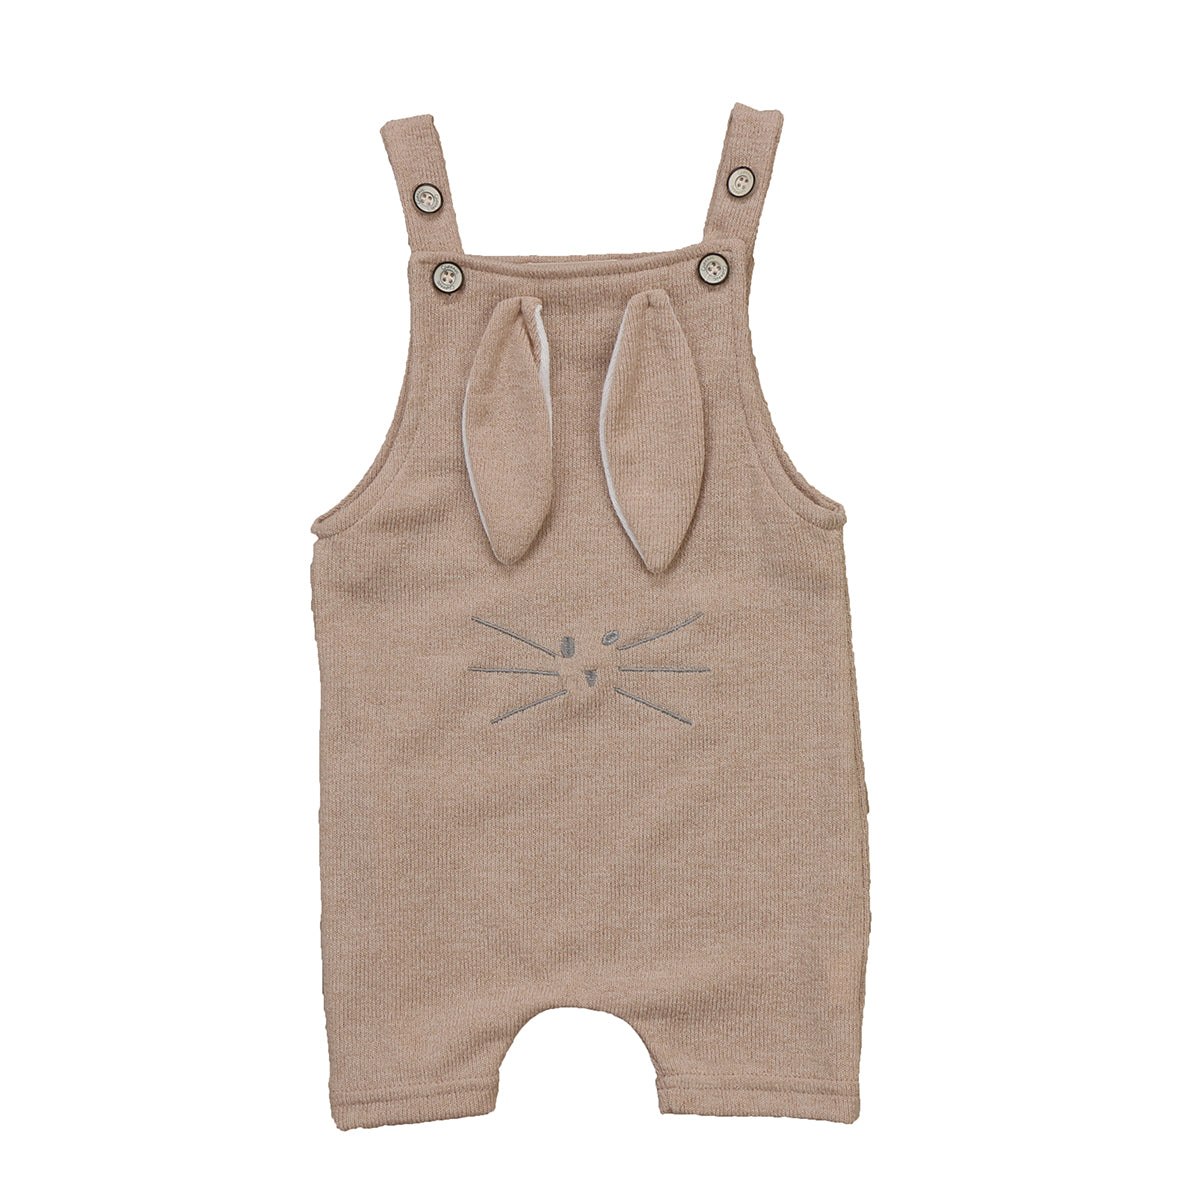 Knitted Rabbit Ears Romper - Darling Little One